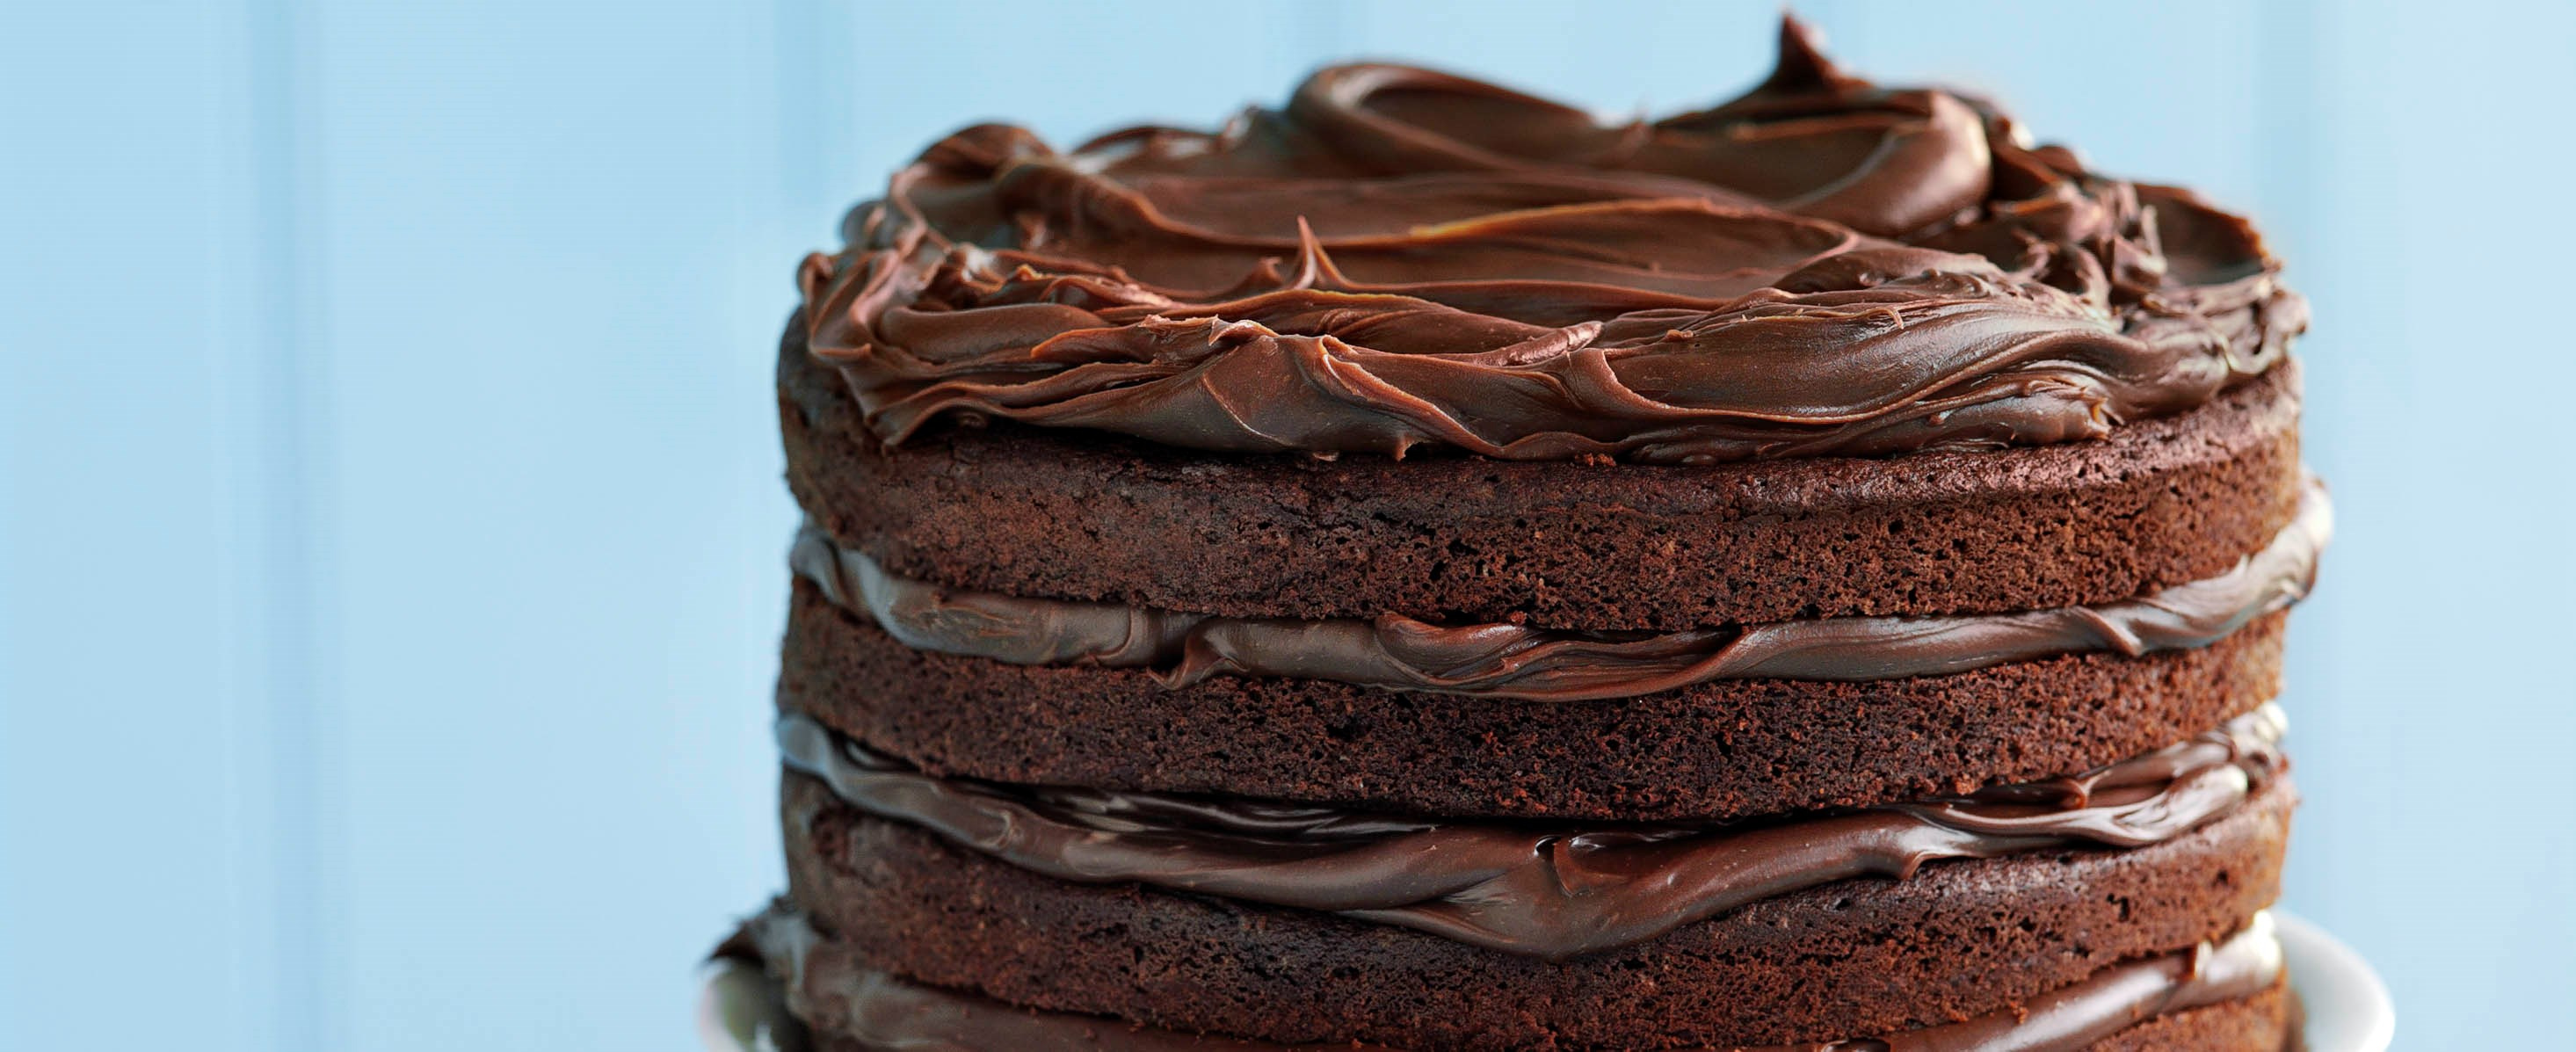 Best Ever Chocolate Mousse Cake